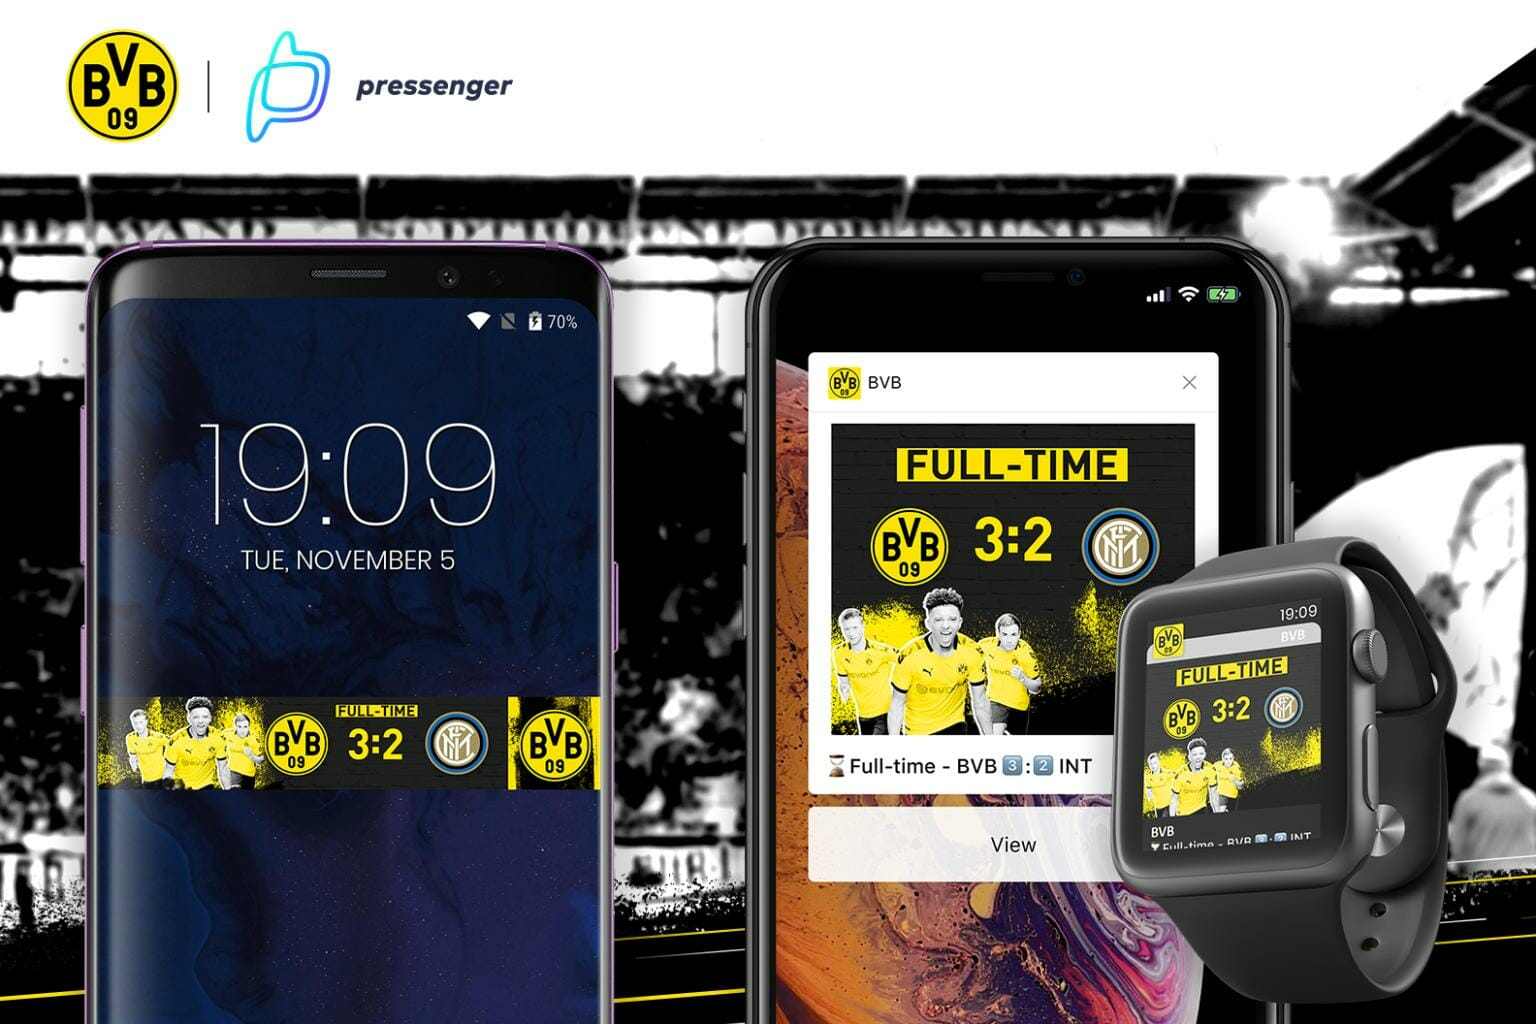 BVB Dortmund uses Pressenger's Visualized Notifications